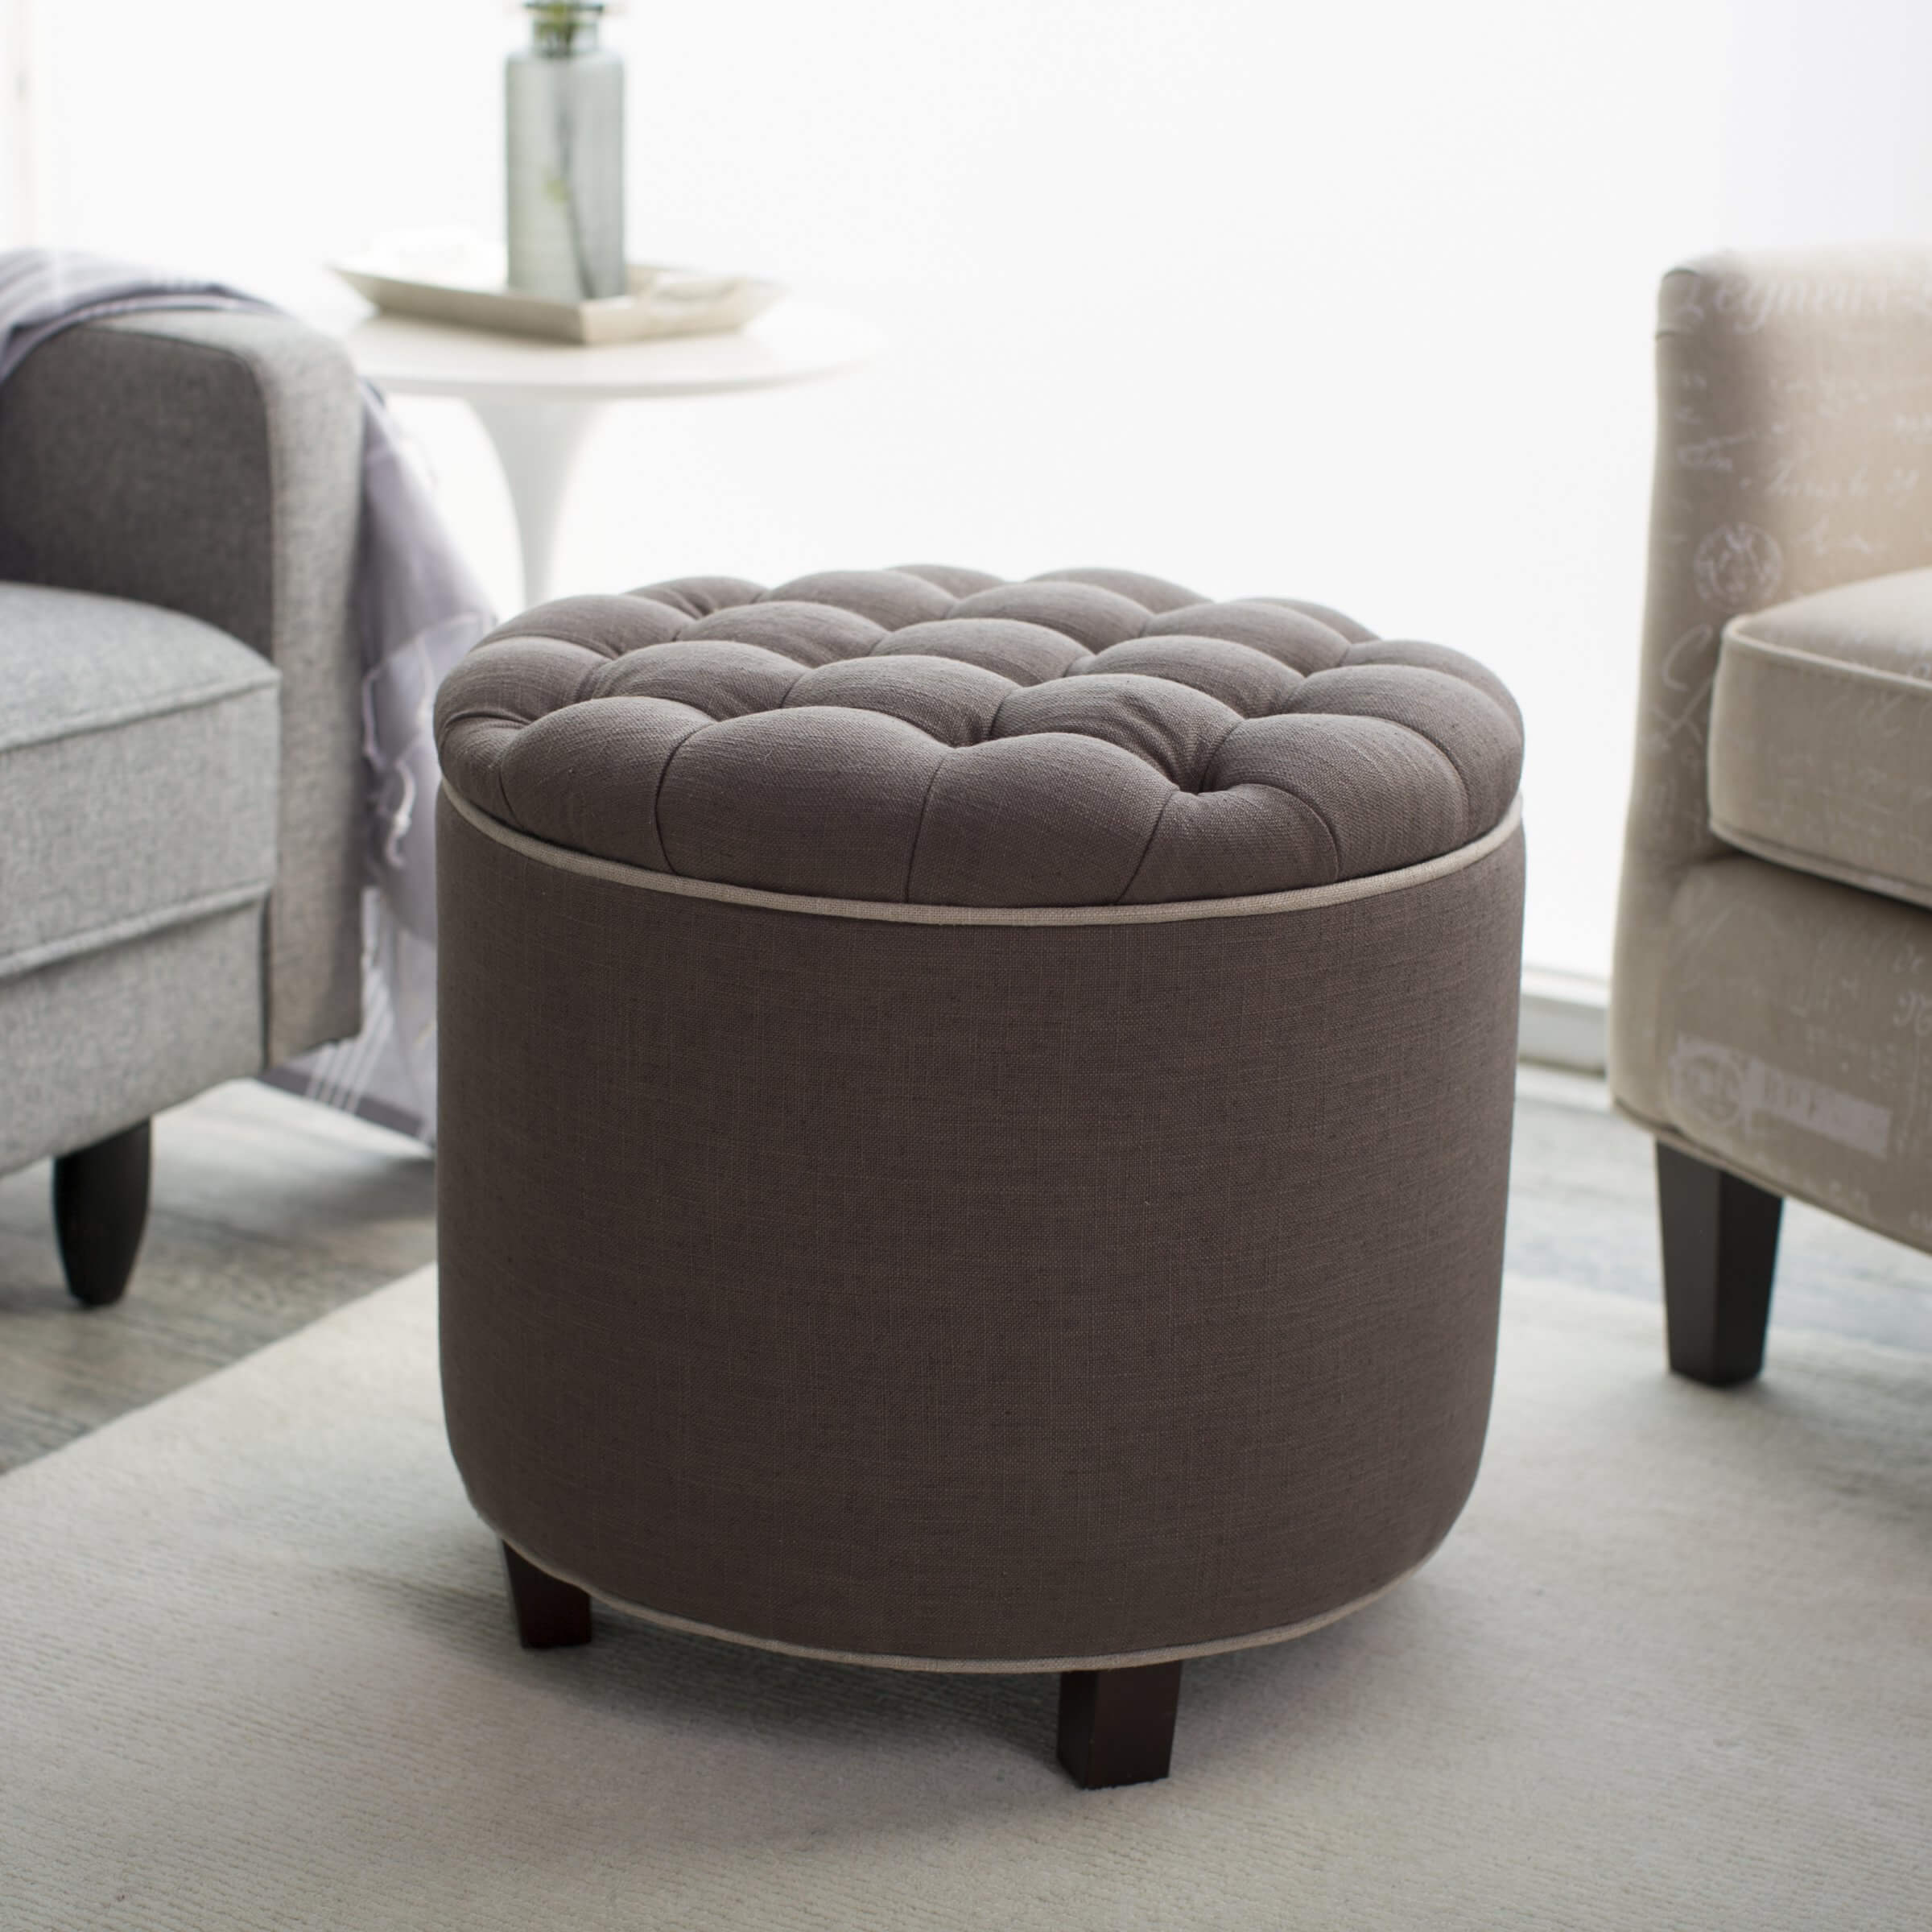 Hereu0027s A Taller, Round Ottoman With Light Chocolate Tufted Upholstery,  Standing Mildly Apart From